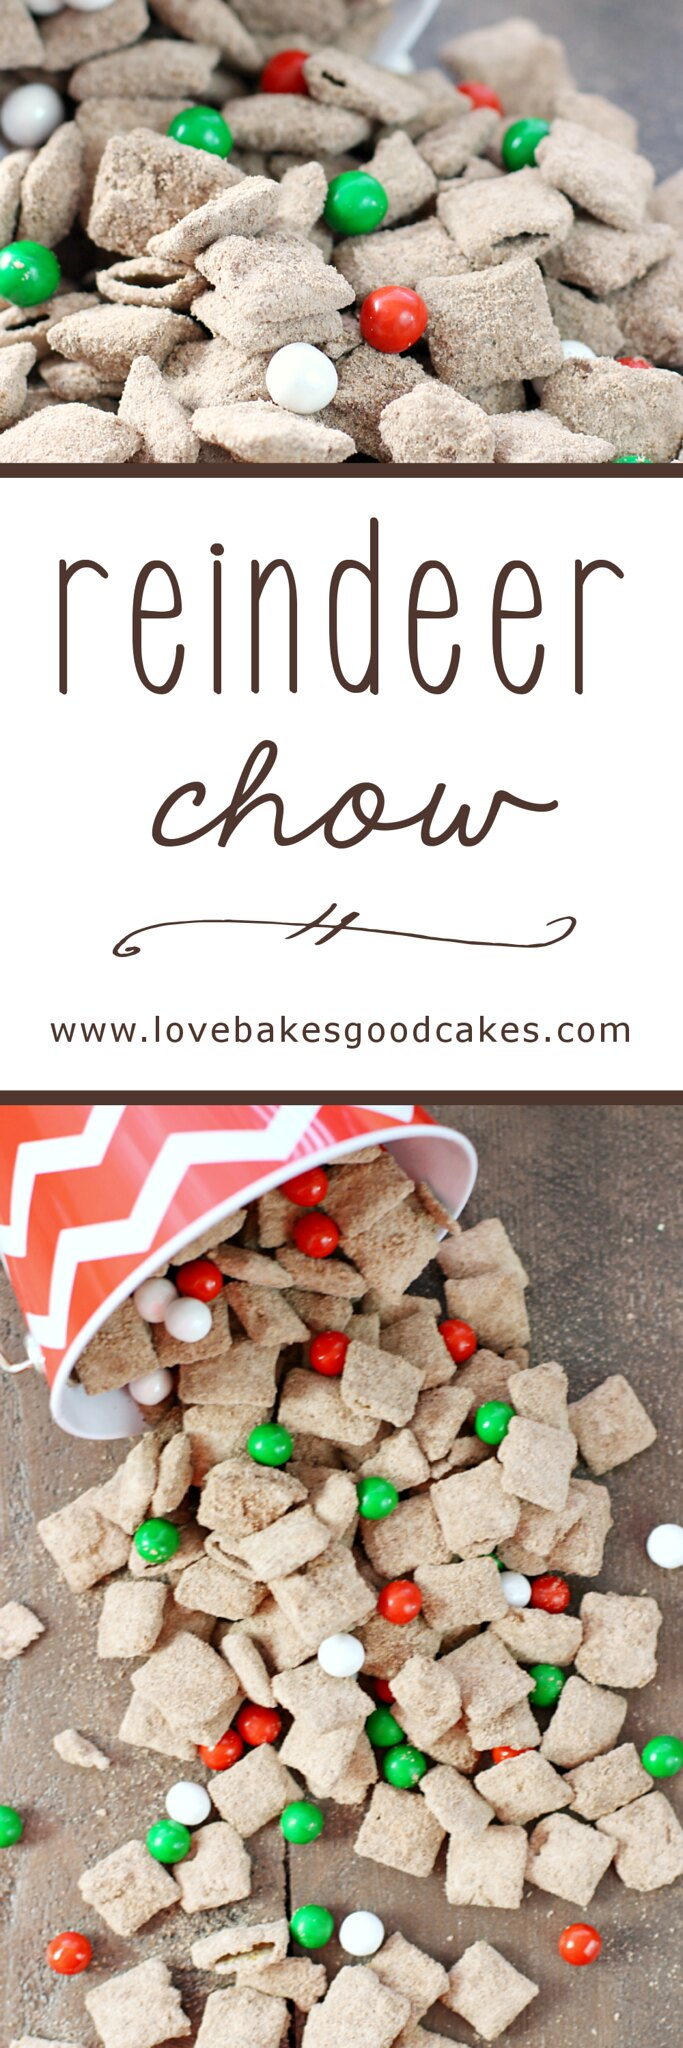 It's easy to turn the classic Muddy Buddies recipe into Reindeer Chow! It's the perfect seasonal snack that is loved by kids and adults!